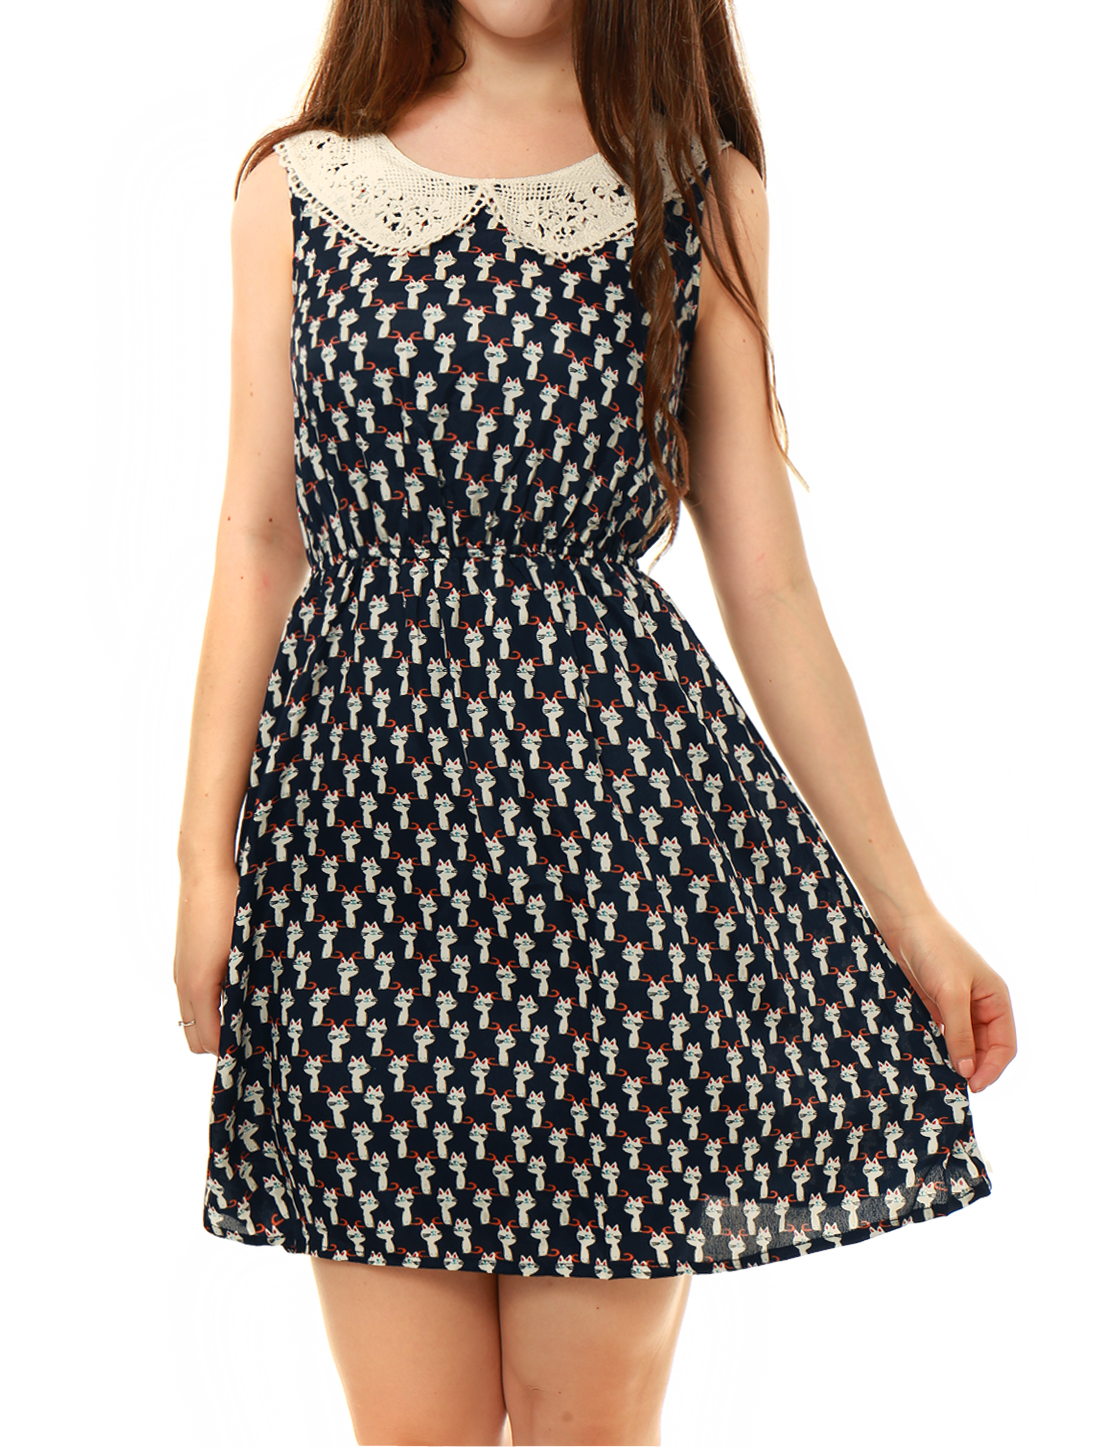 Pullover Chic Cartoon Cats Printed Dark Blue Mini Dress for Lady L